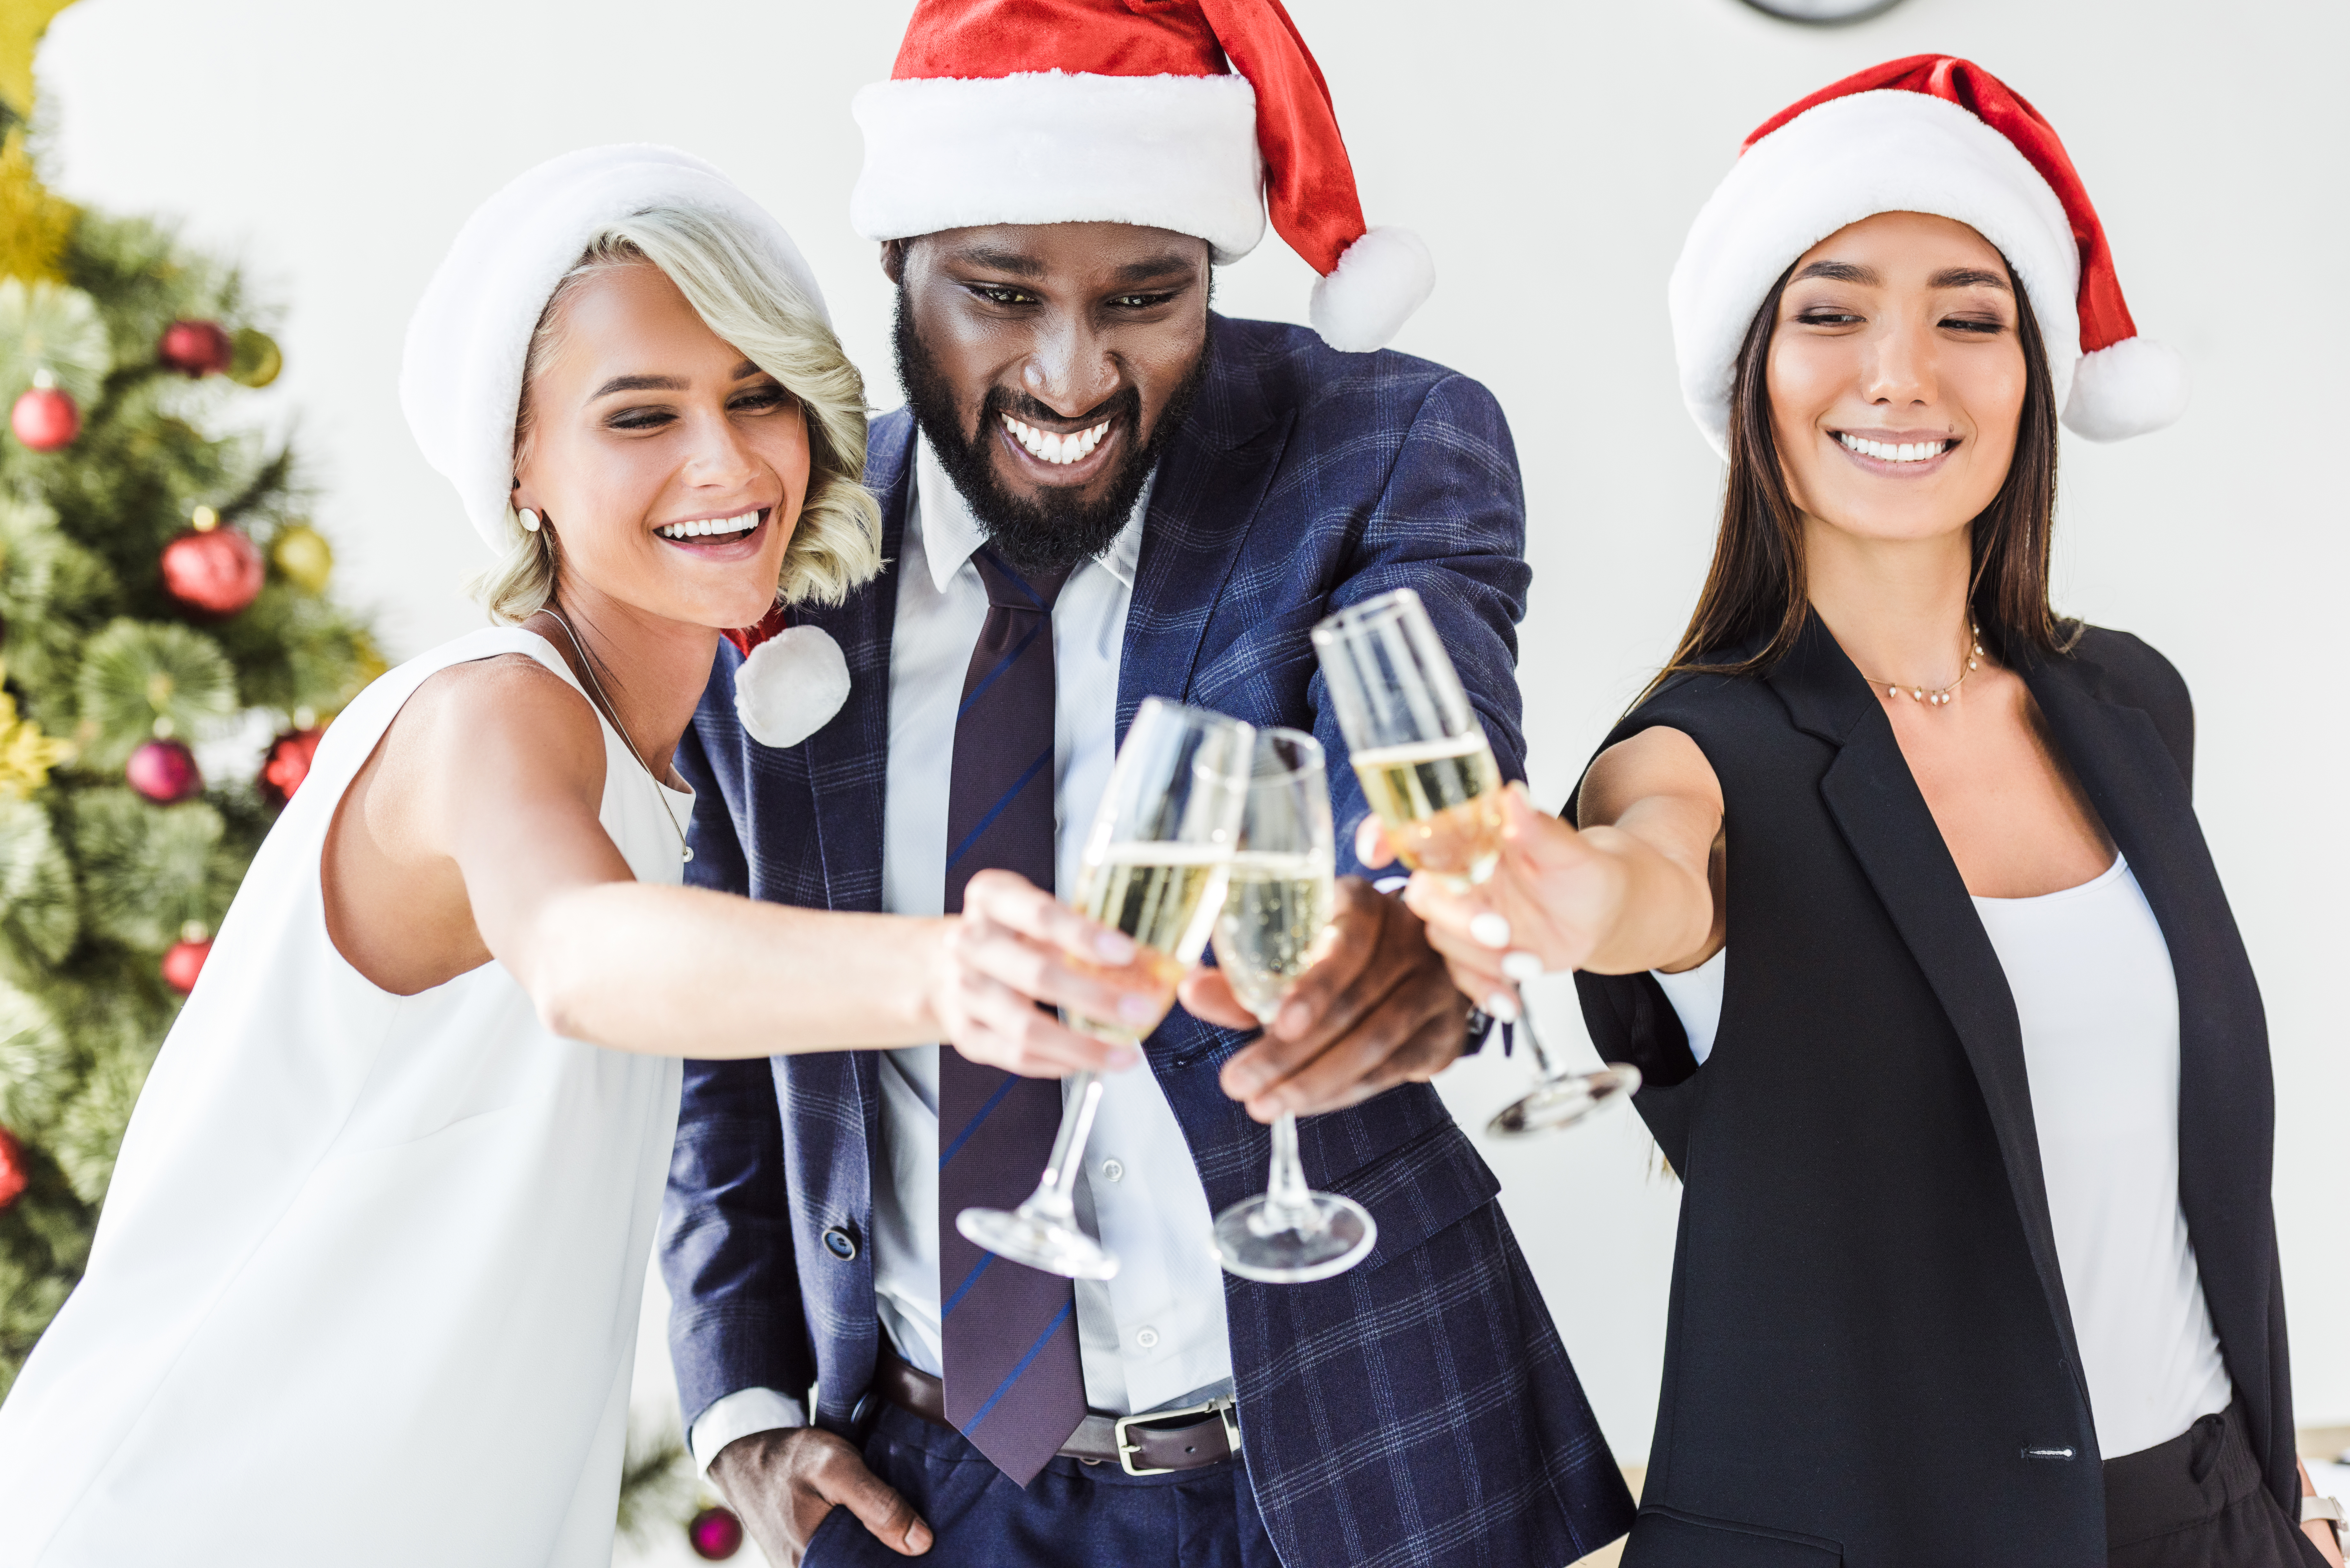 Three adults wearing Santa hats clink champagne glasses together during a holiday party.